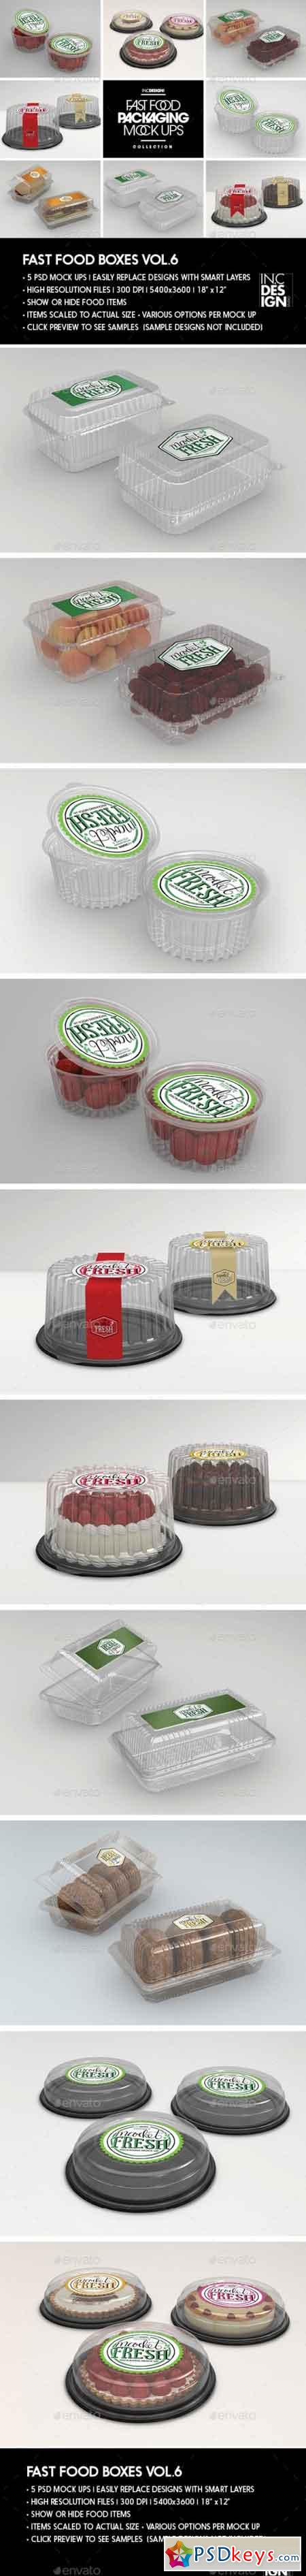 Fast Food Boxes Vol.6 Take Out Packaging Mock Ups 19048071